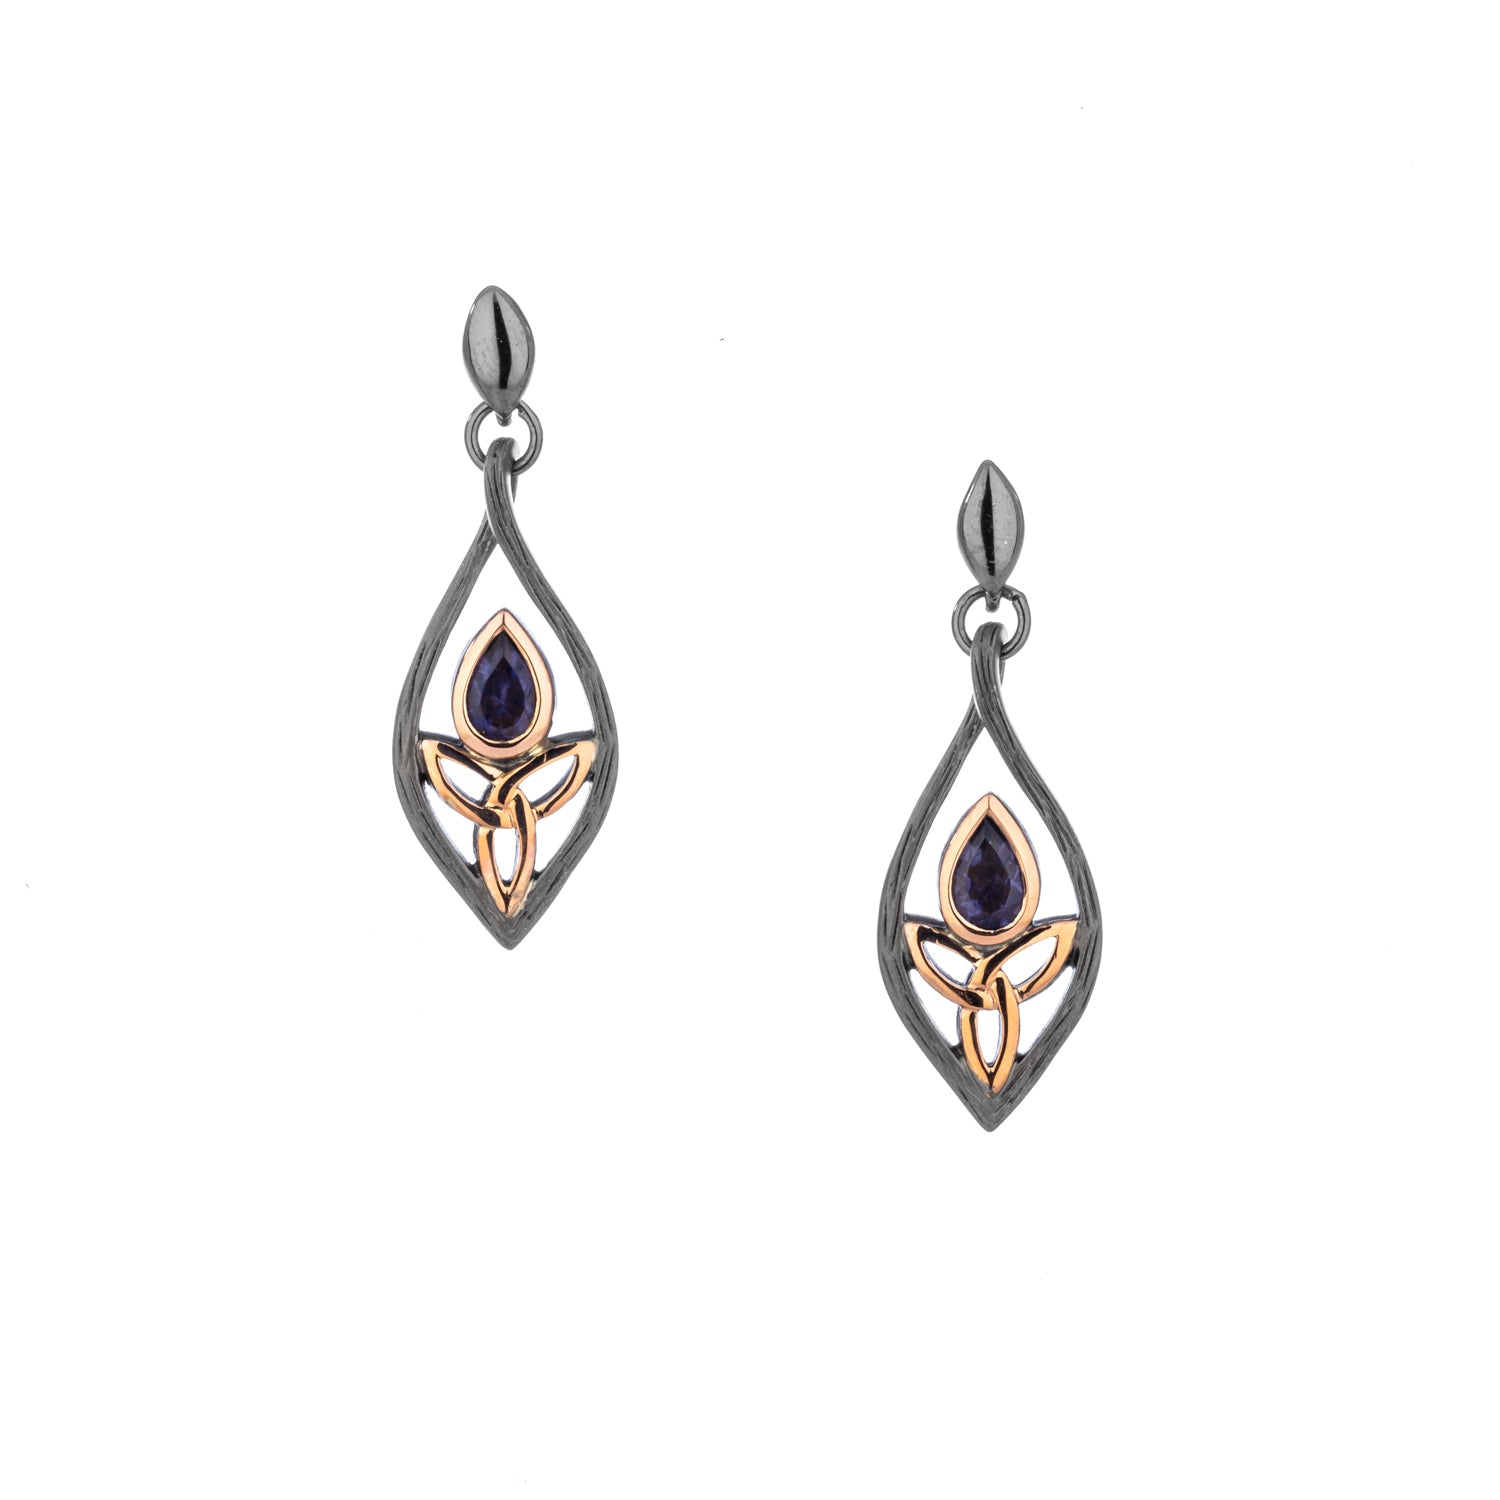 Earrings Ruthenium 10k Rose Iolite Archangel Post Earrings from welch and company jewelers near syracuse ny